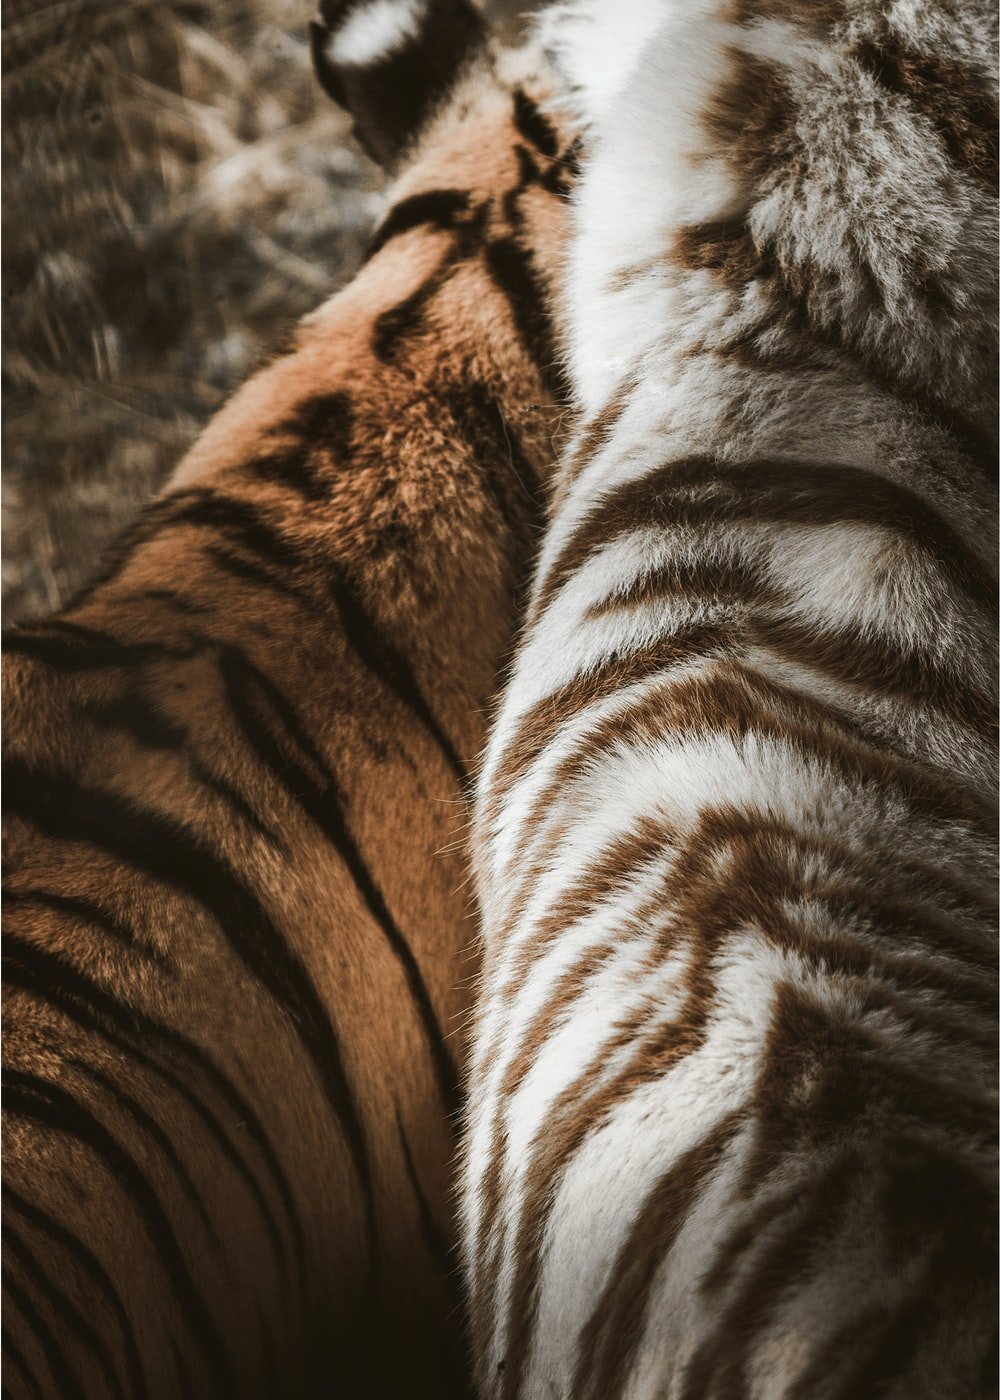 two white and brown tigers